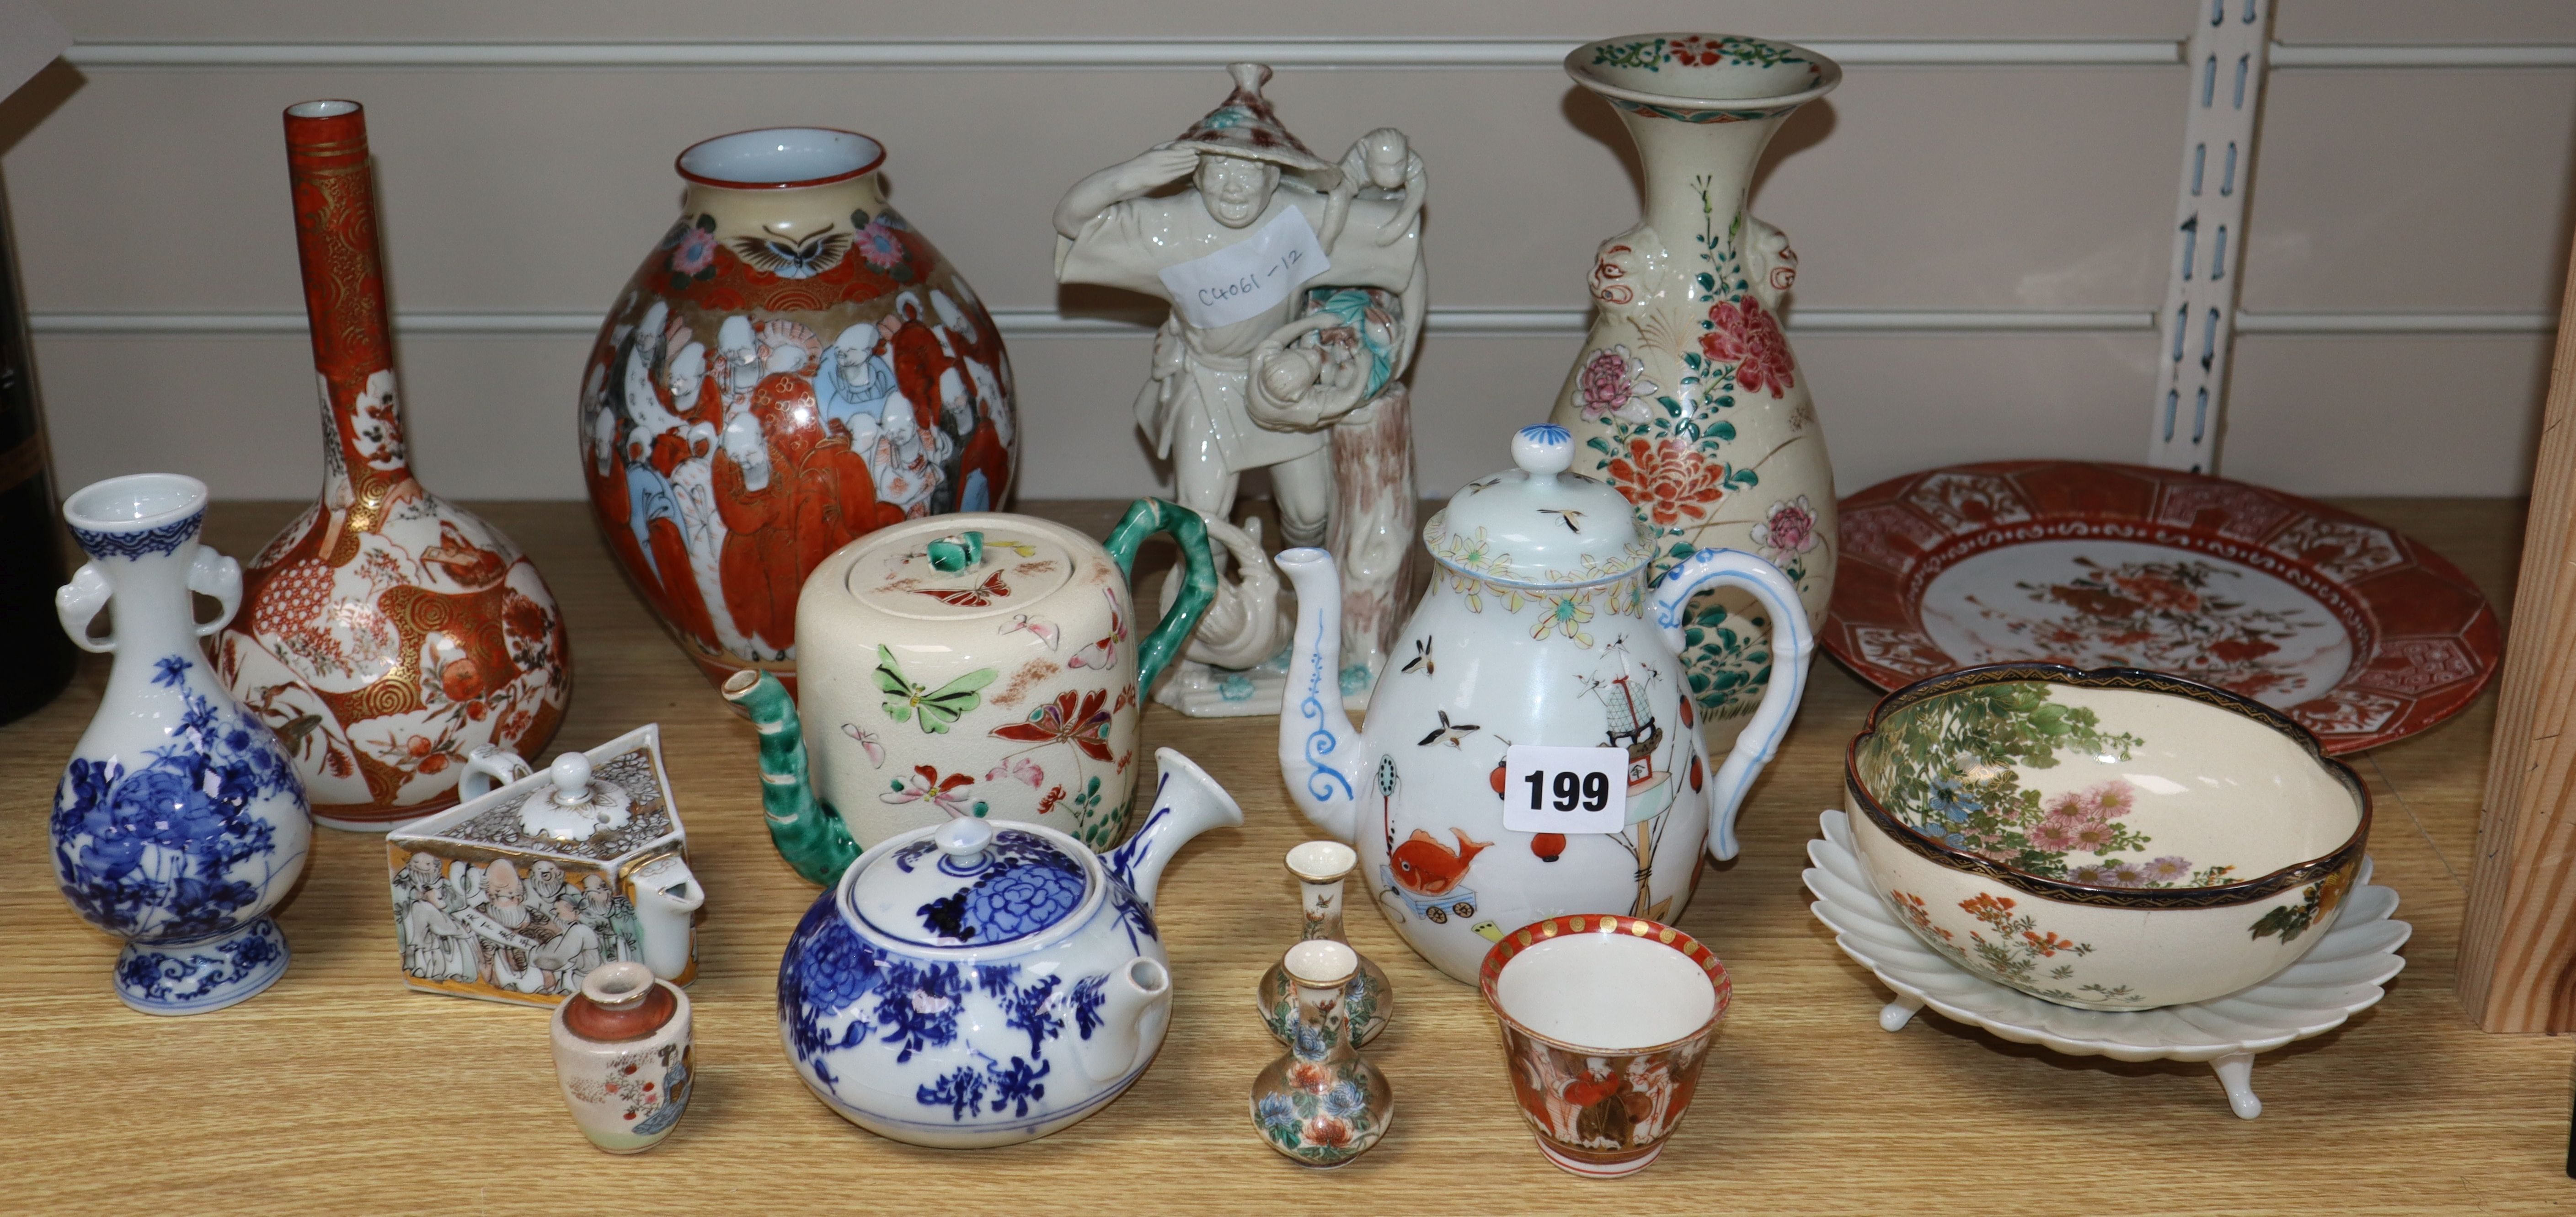 Lot 199 - A group of Japanese ceramics